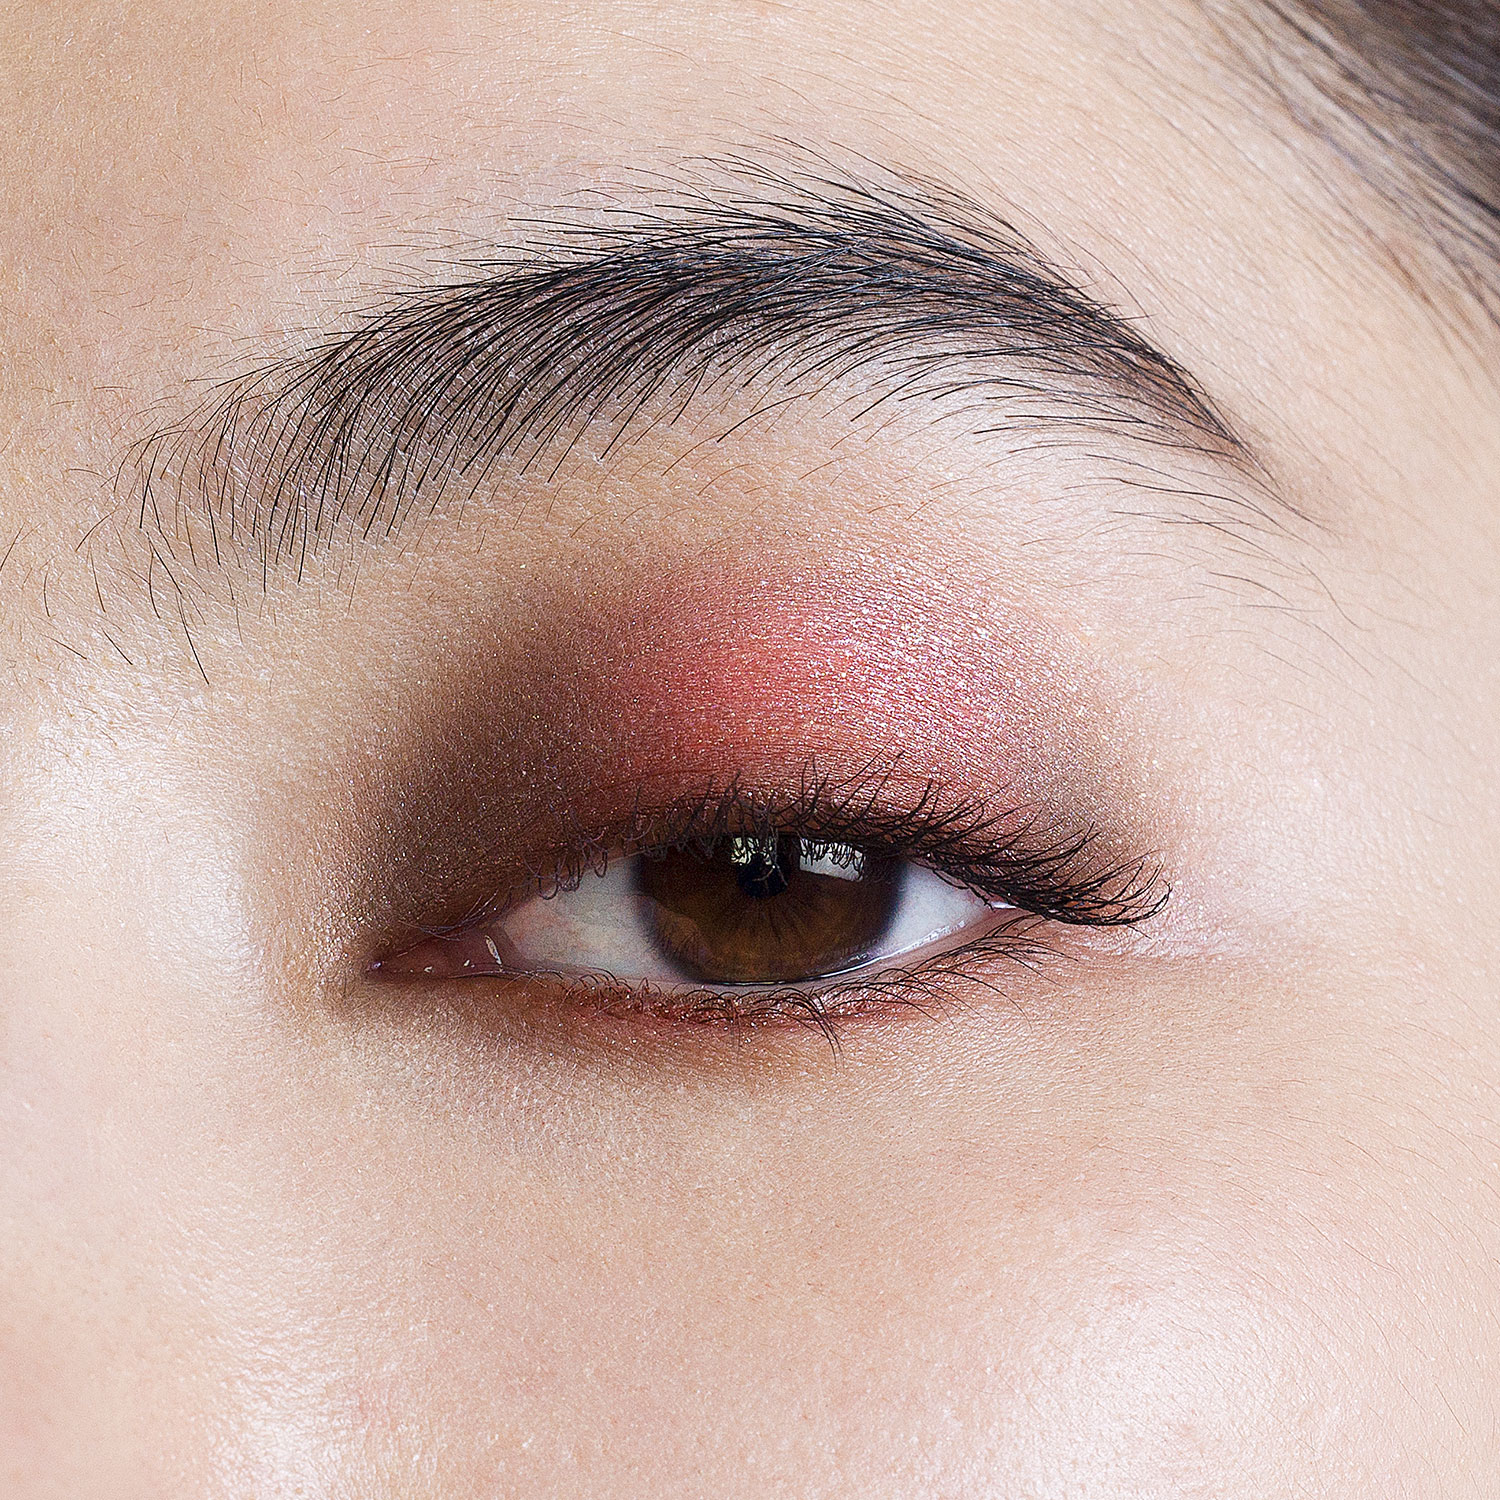 RMK Fall 2021 Collection Rosewood Daydream Rosewood Daydream 4 Eyes 04 Autumn Dusk